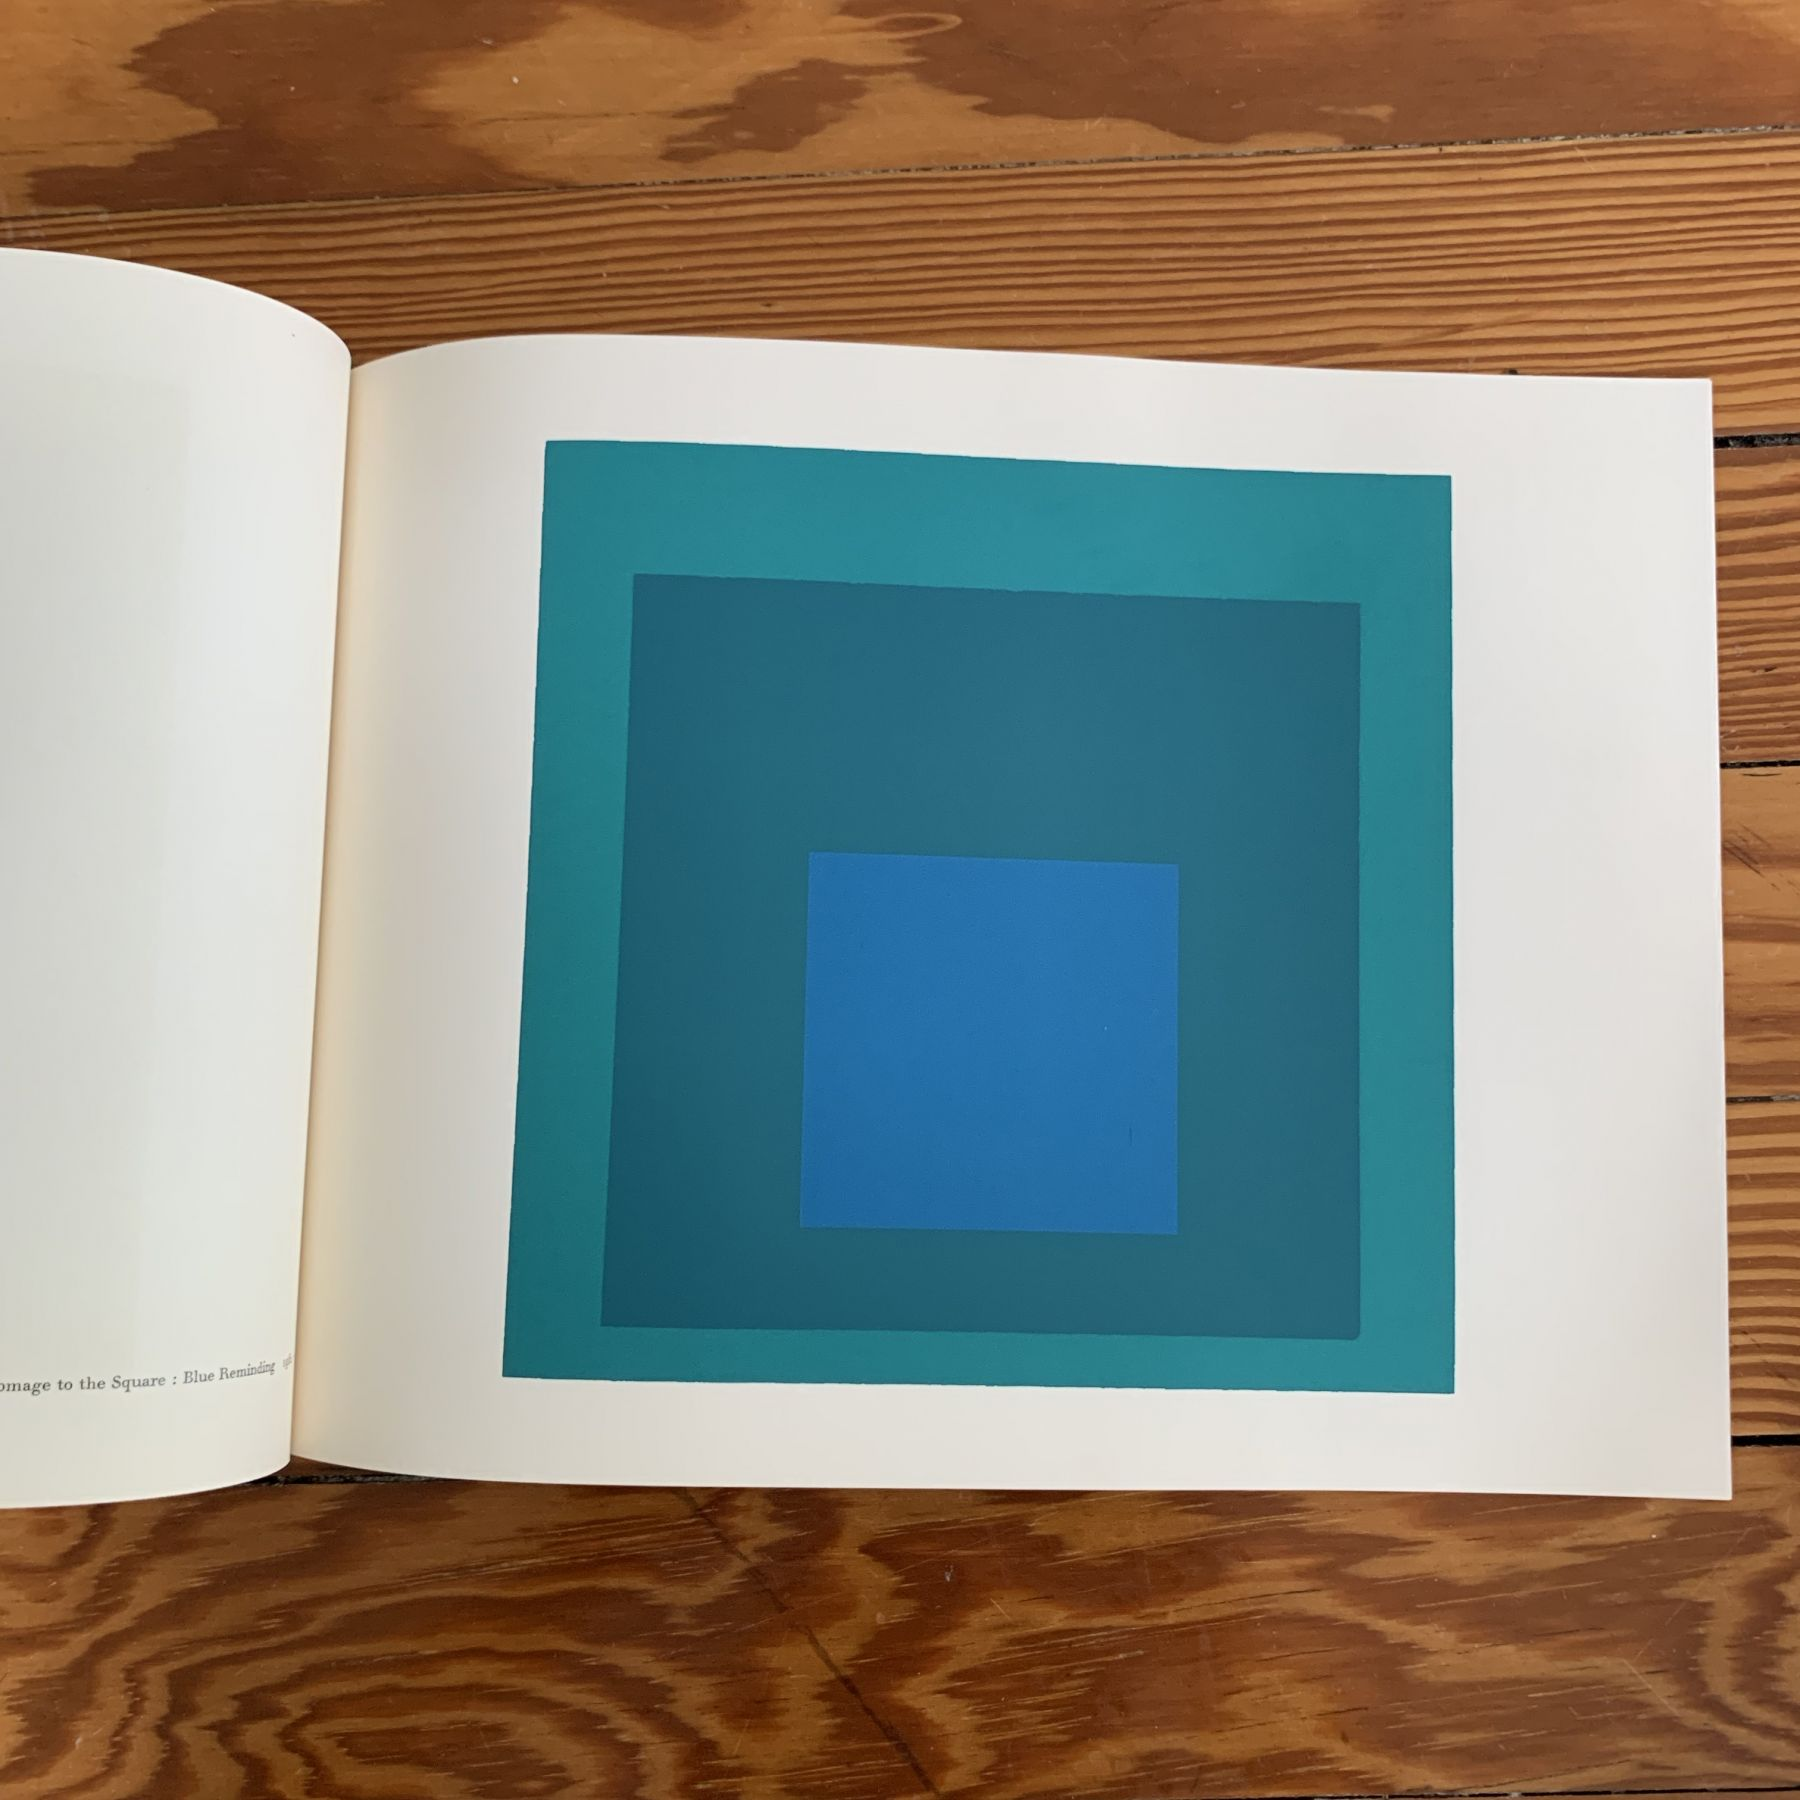 Altnerate Projects, Albers Homage to the Square: 40 New Paintings by Josef Albers